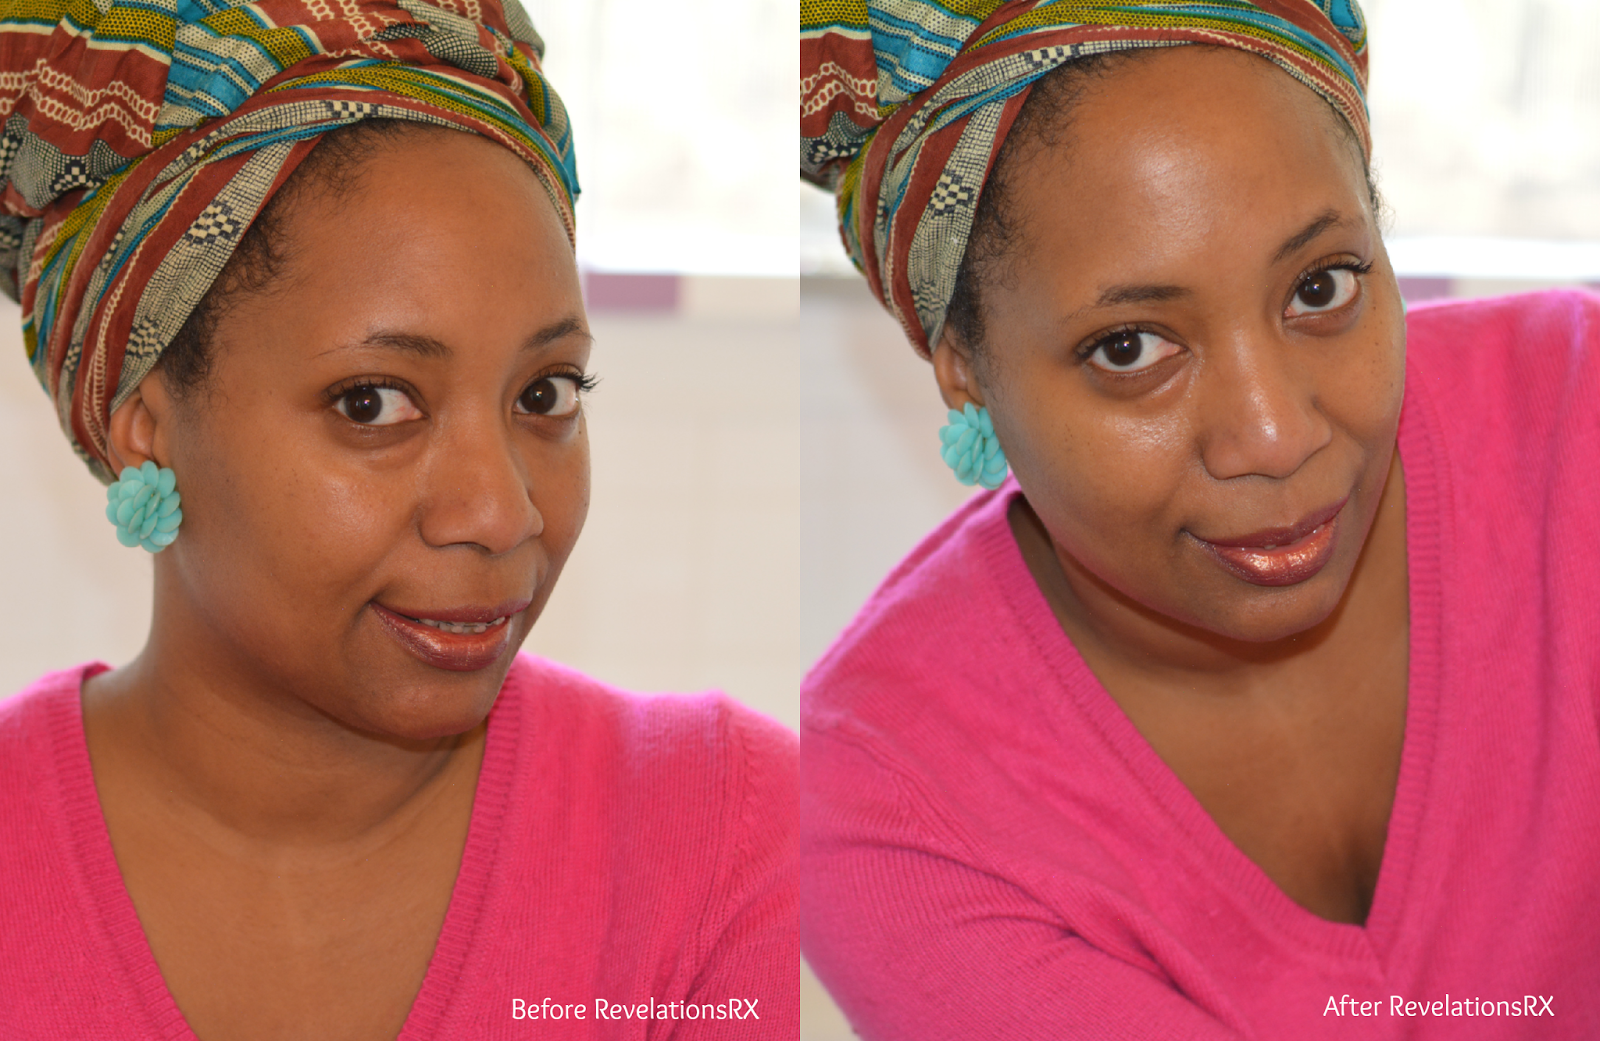 Hydrating Dry Skin with RevelationsRX Face Masks, beauty, skincare, solution for wrinkles